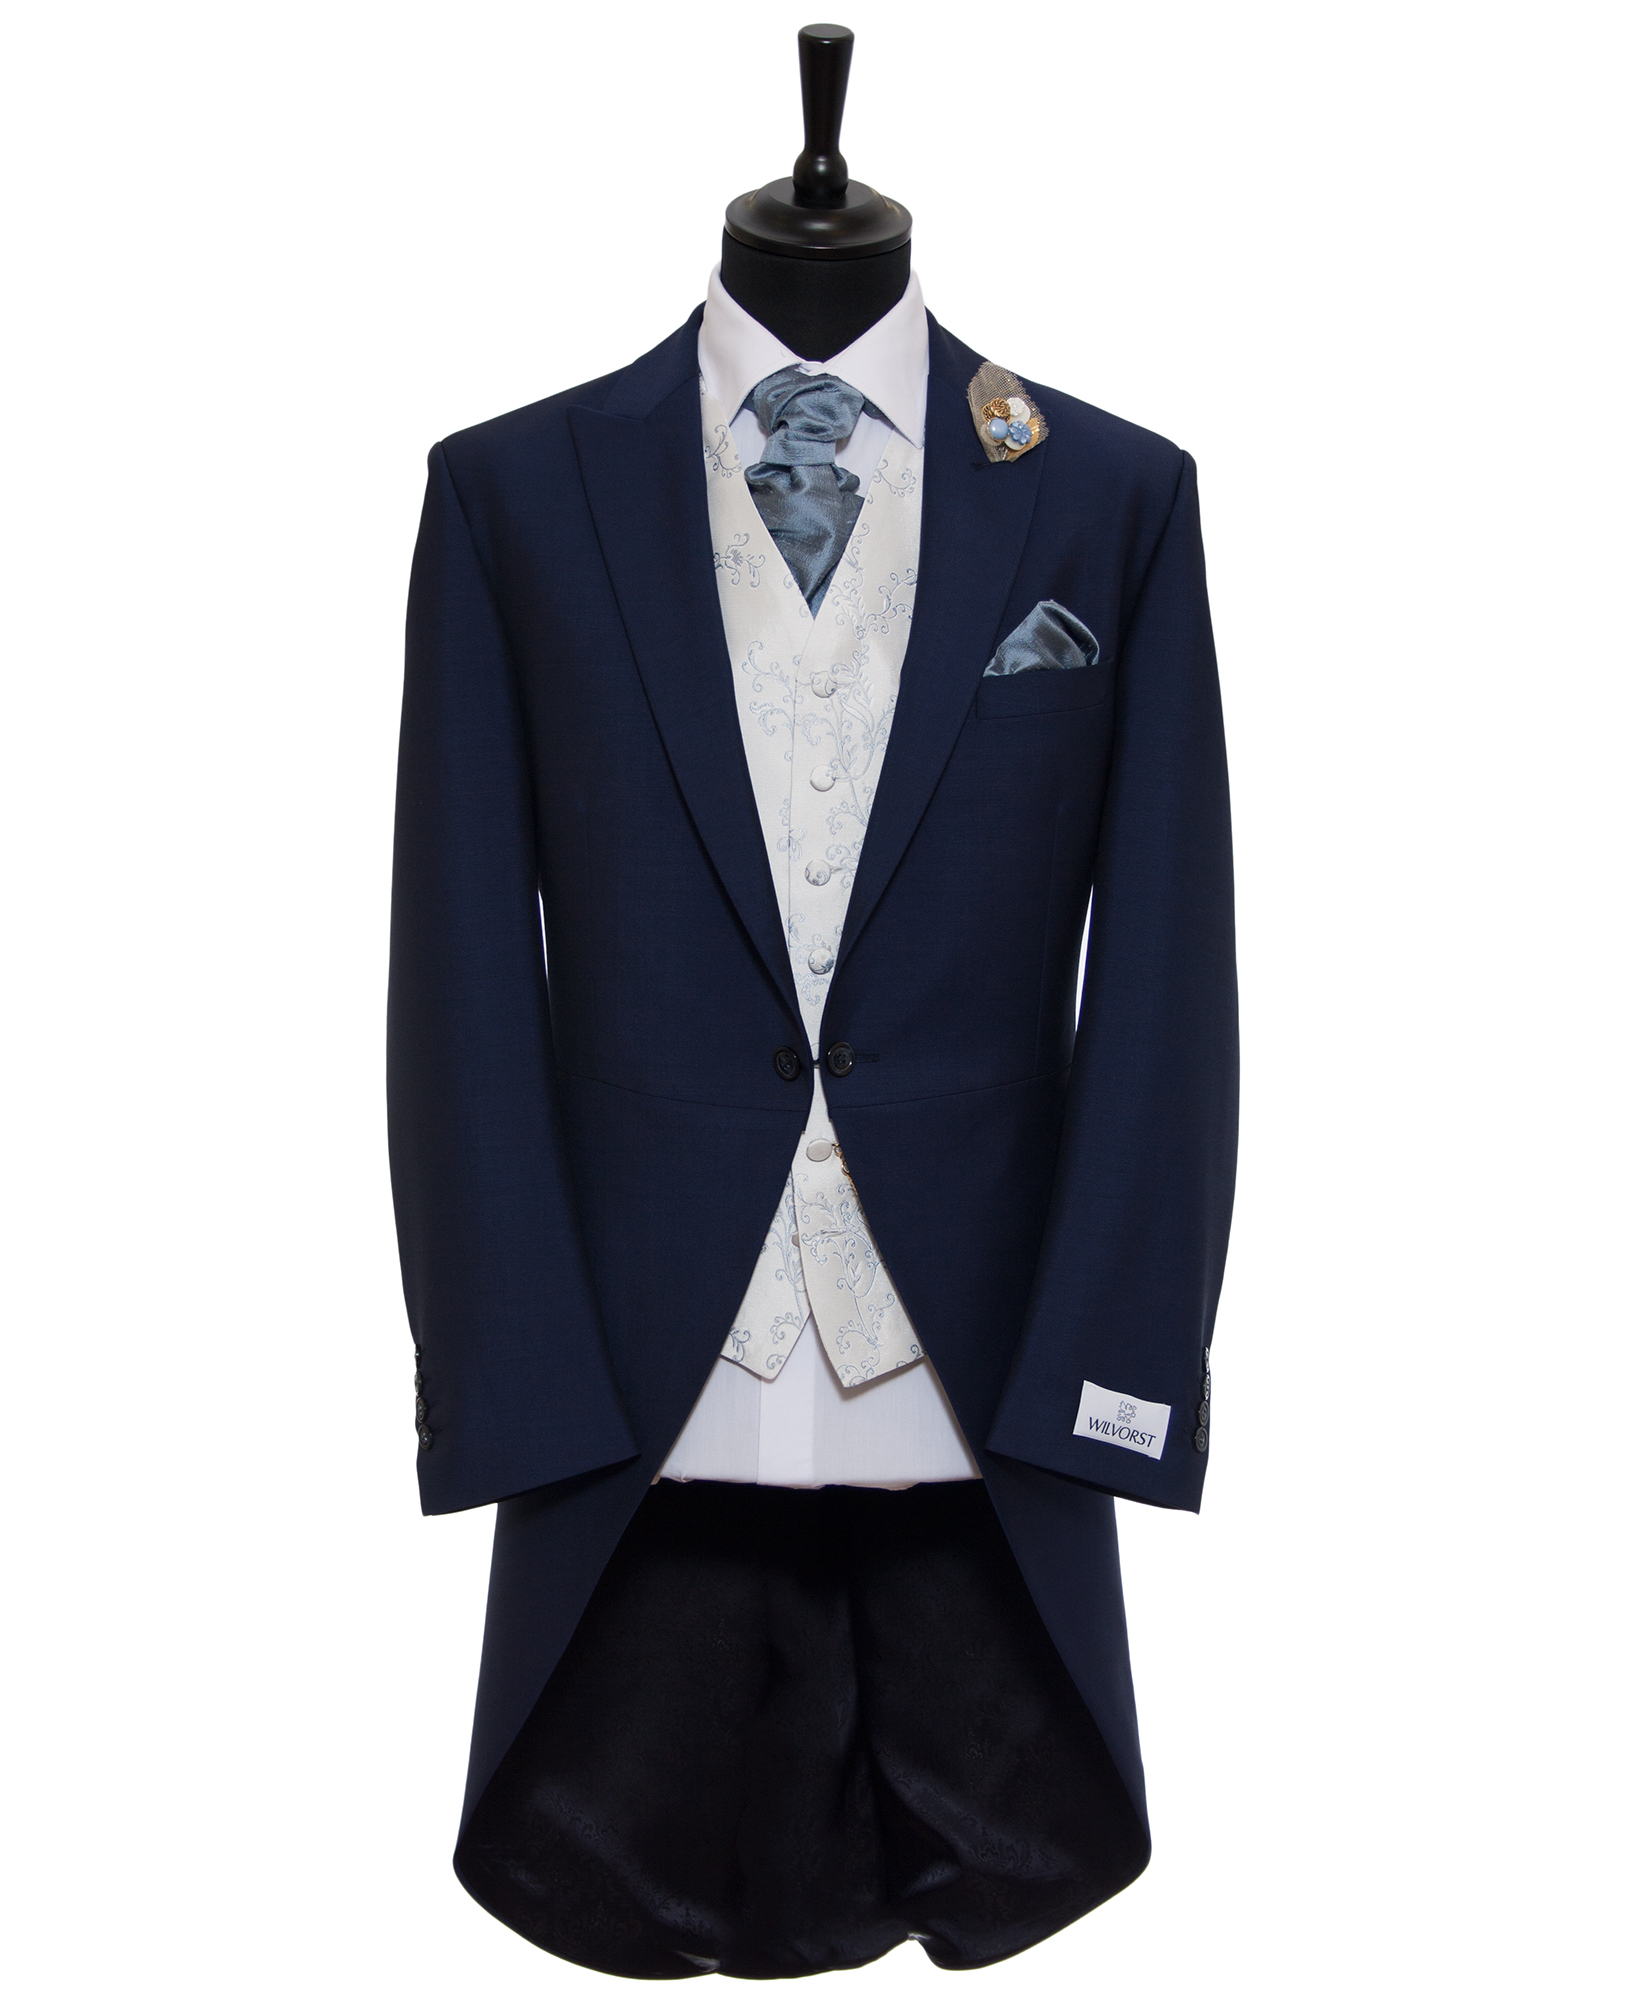 01_french navy cavendish morning suit.jpg: 5906 bytes